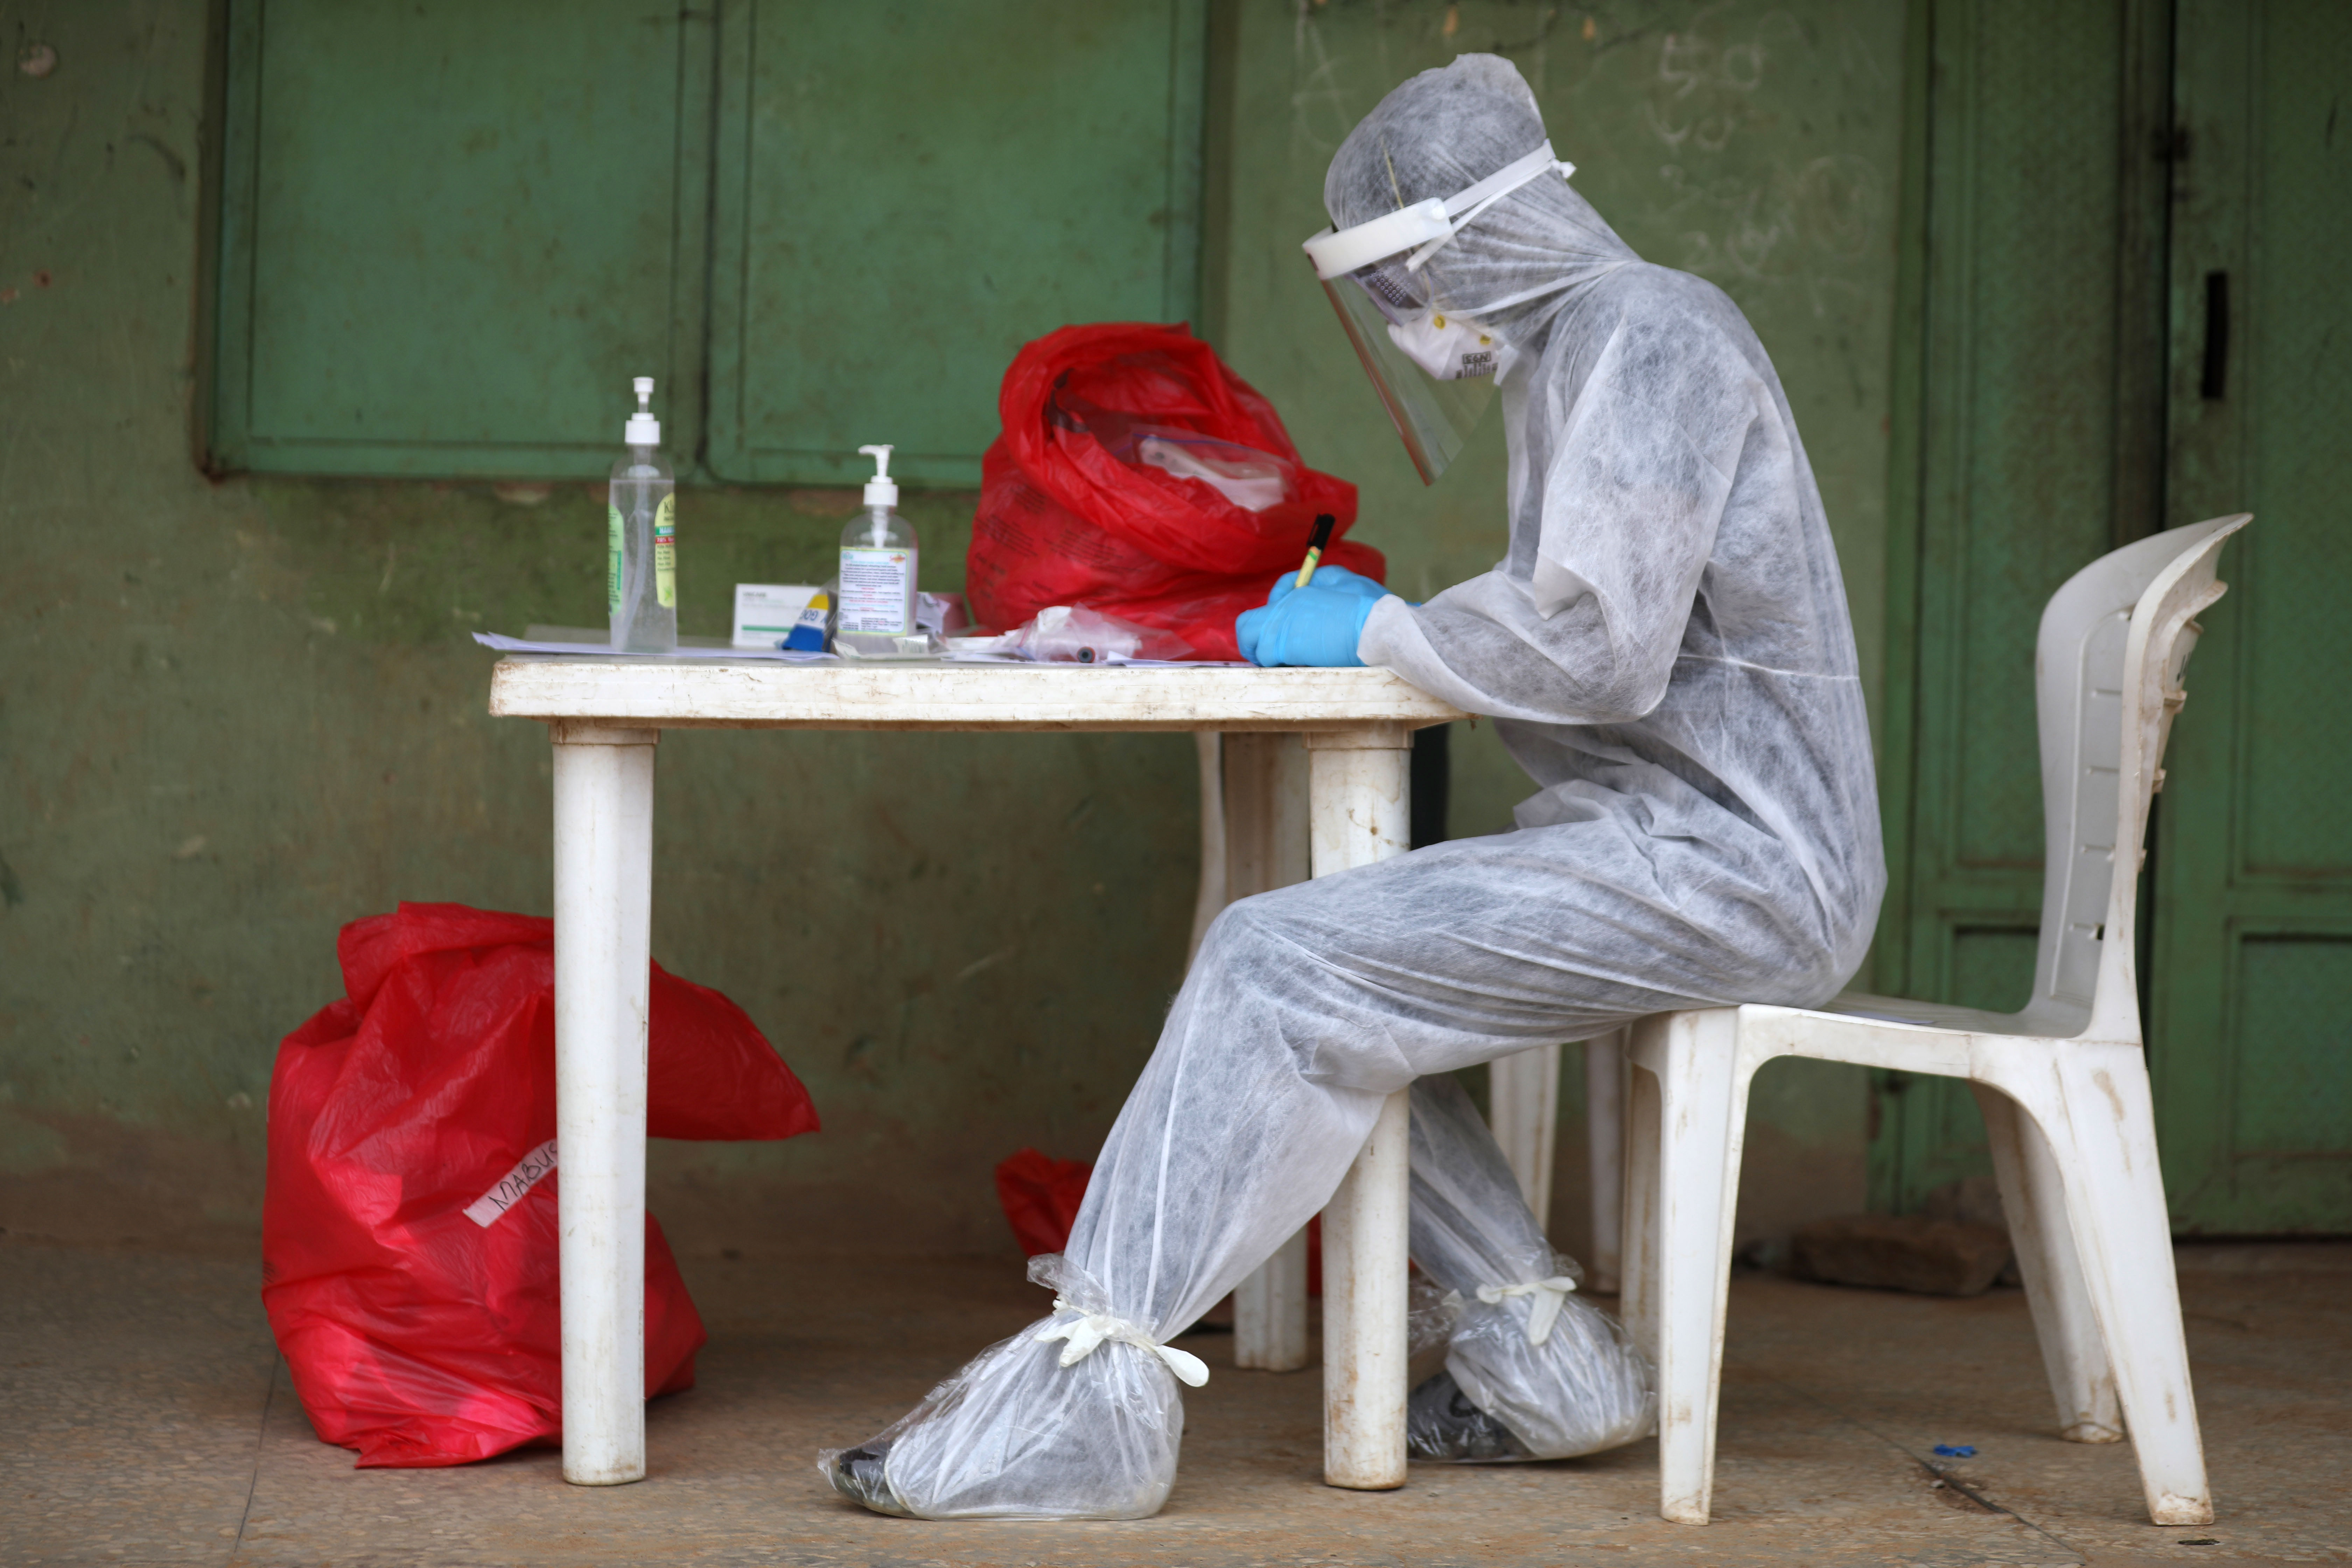 A health care professional in Abuja, Nigeria, works on a sample during a community Covid-19 testing campaign on April 15.